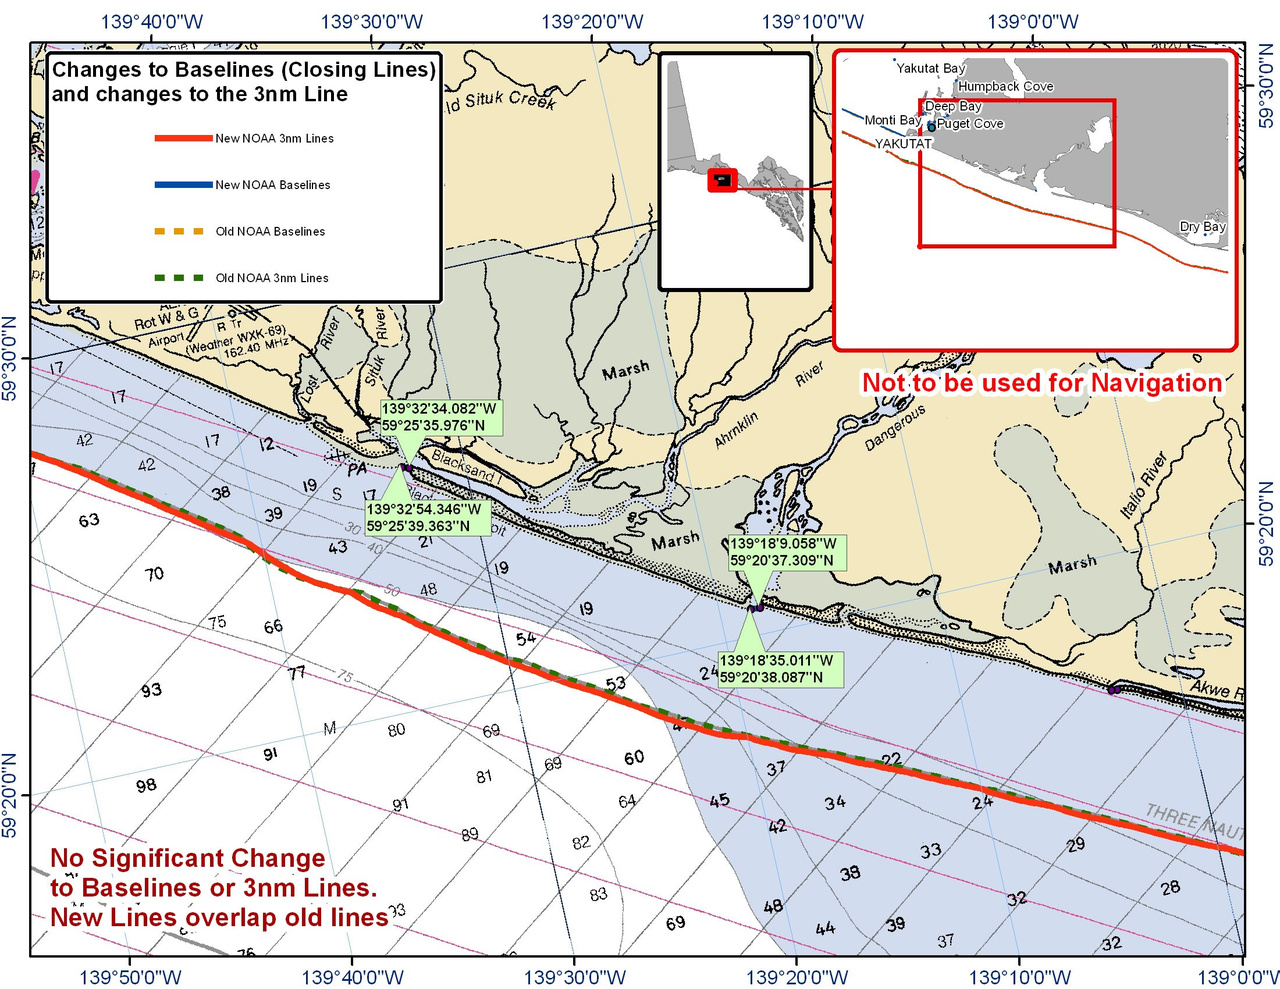 Chart for Area between Yakutat and Dry Bay